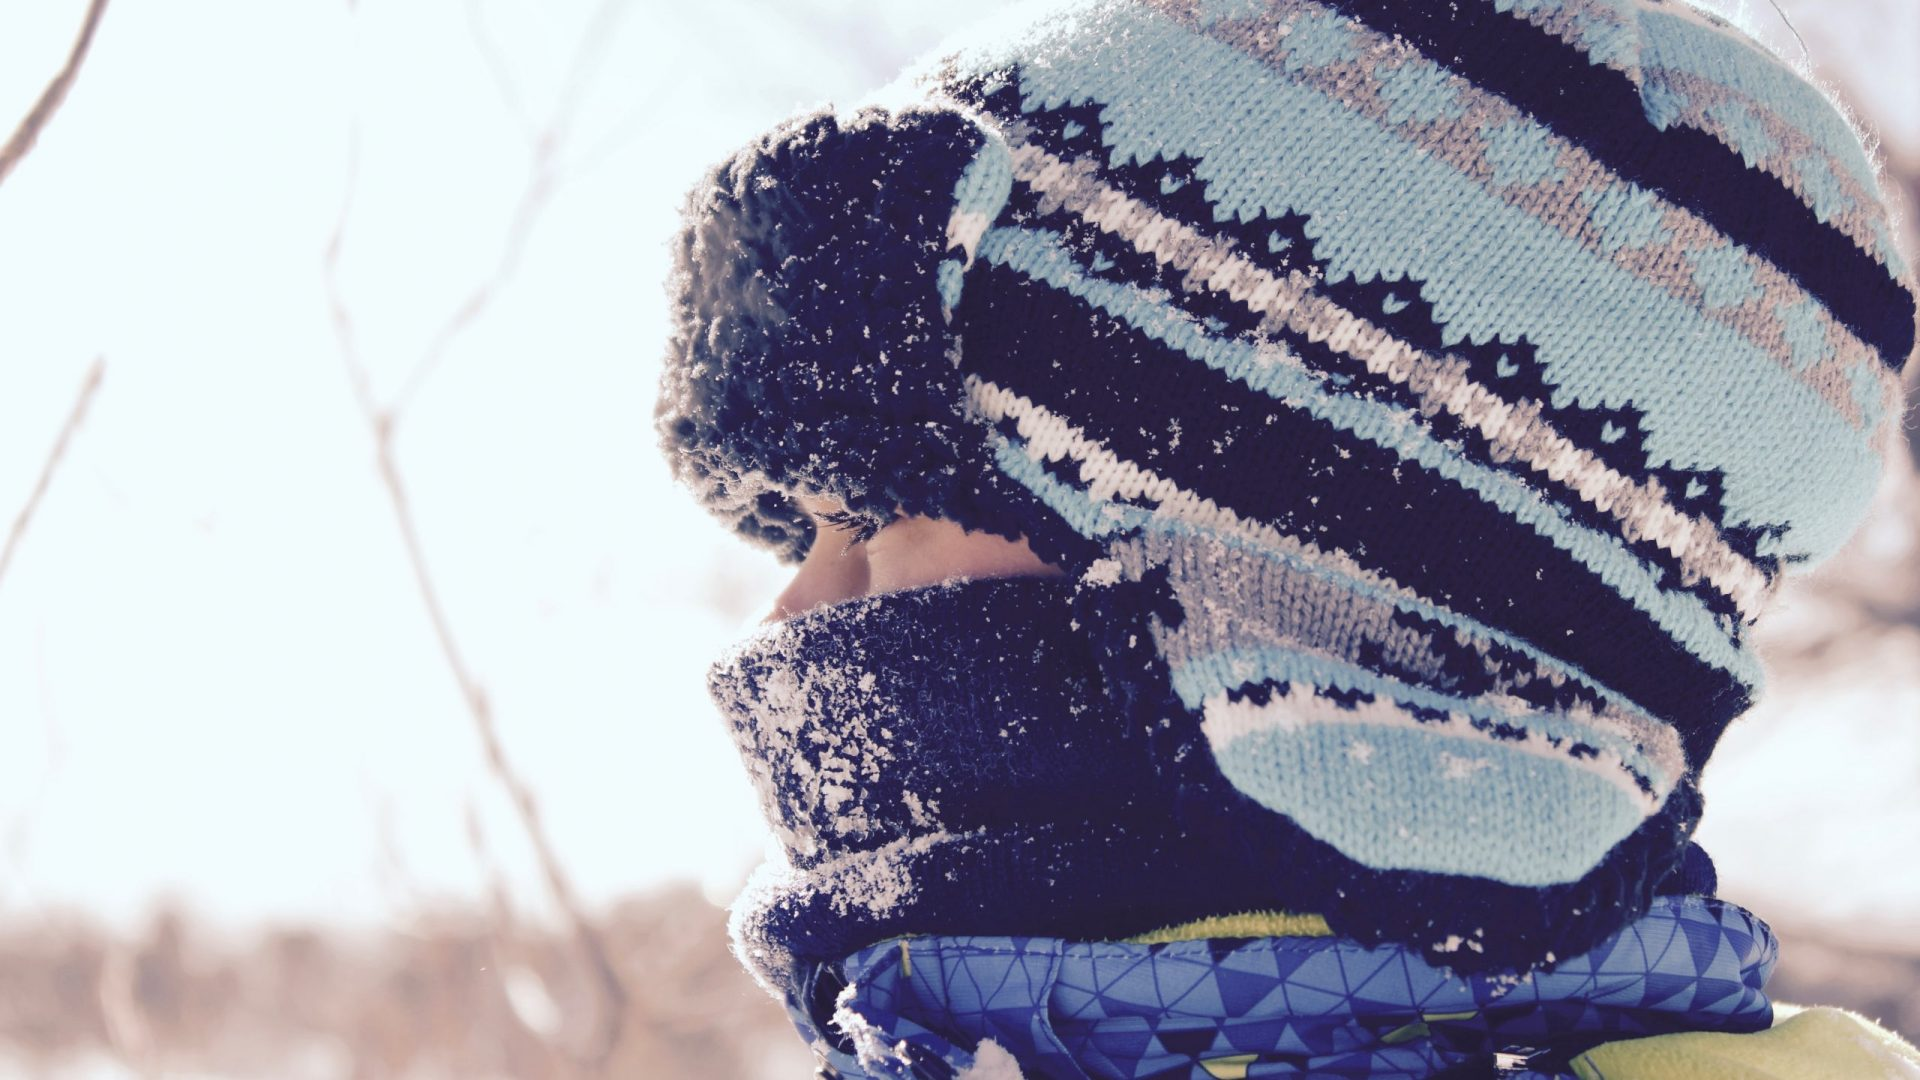 profile of child outside in winter